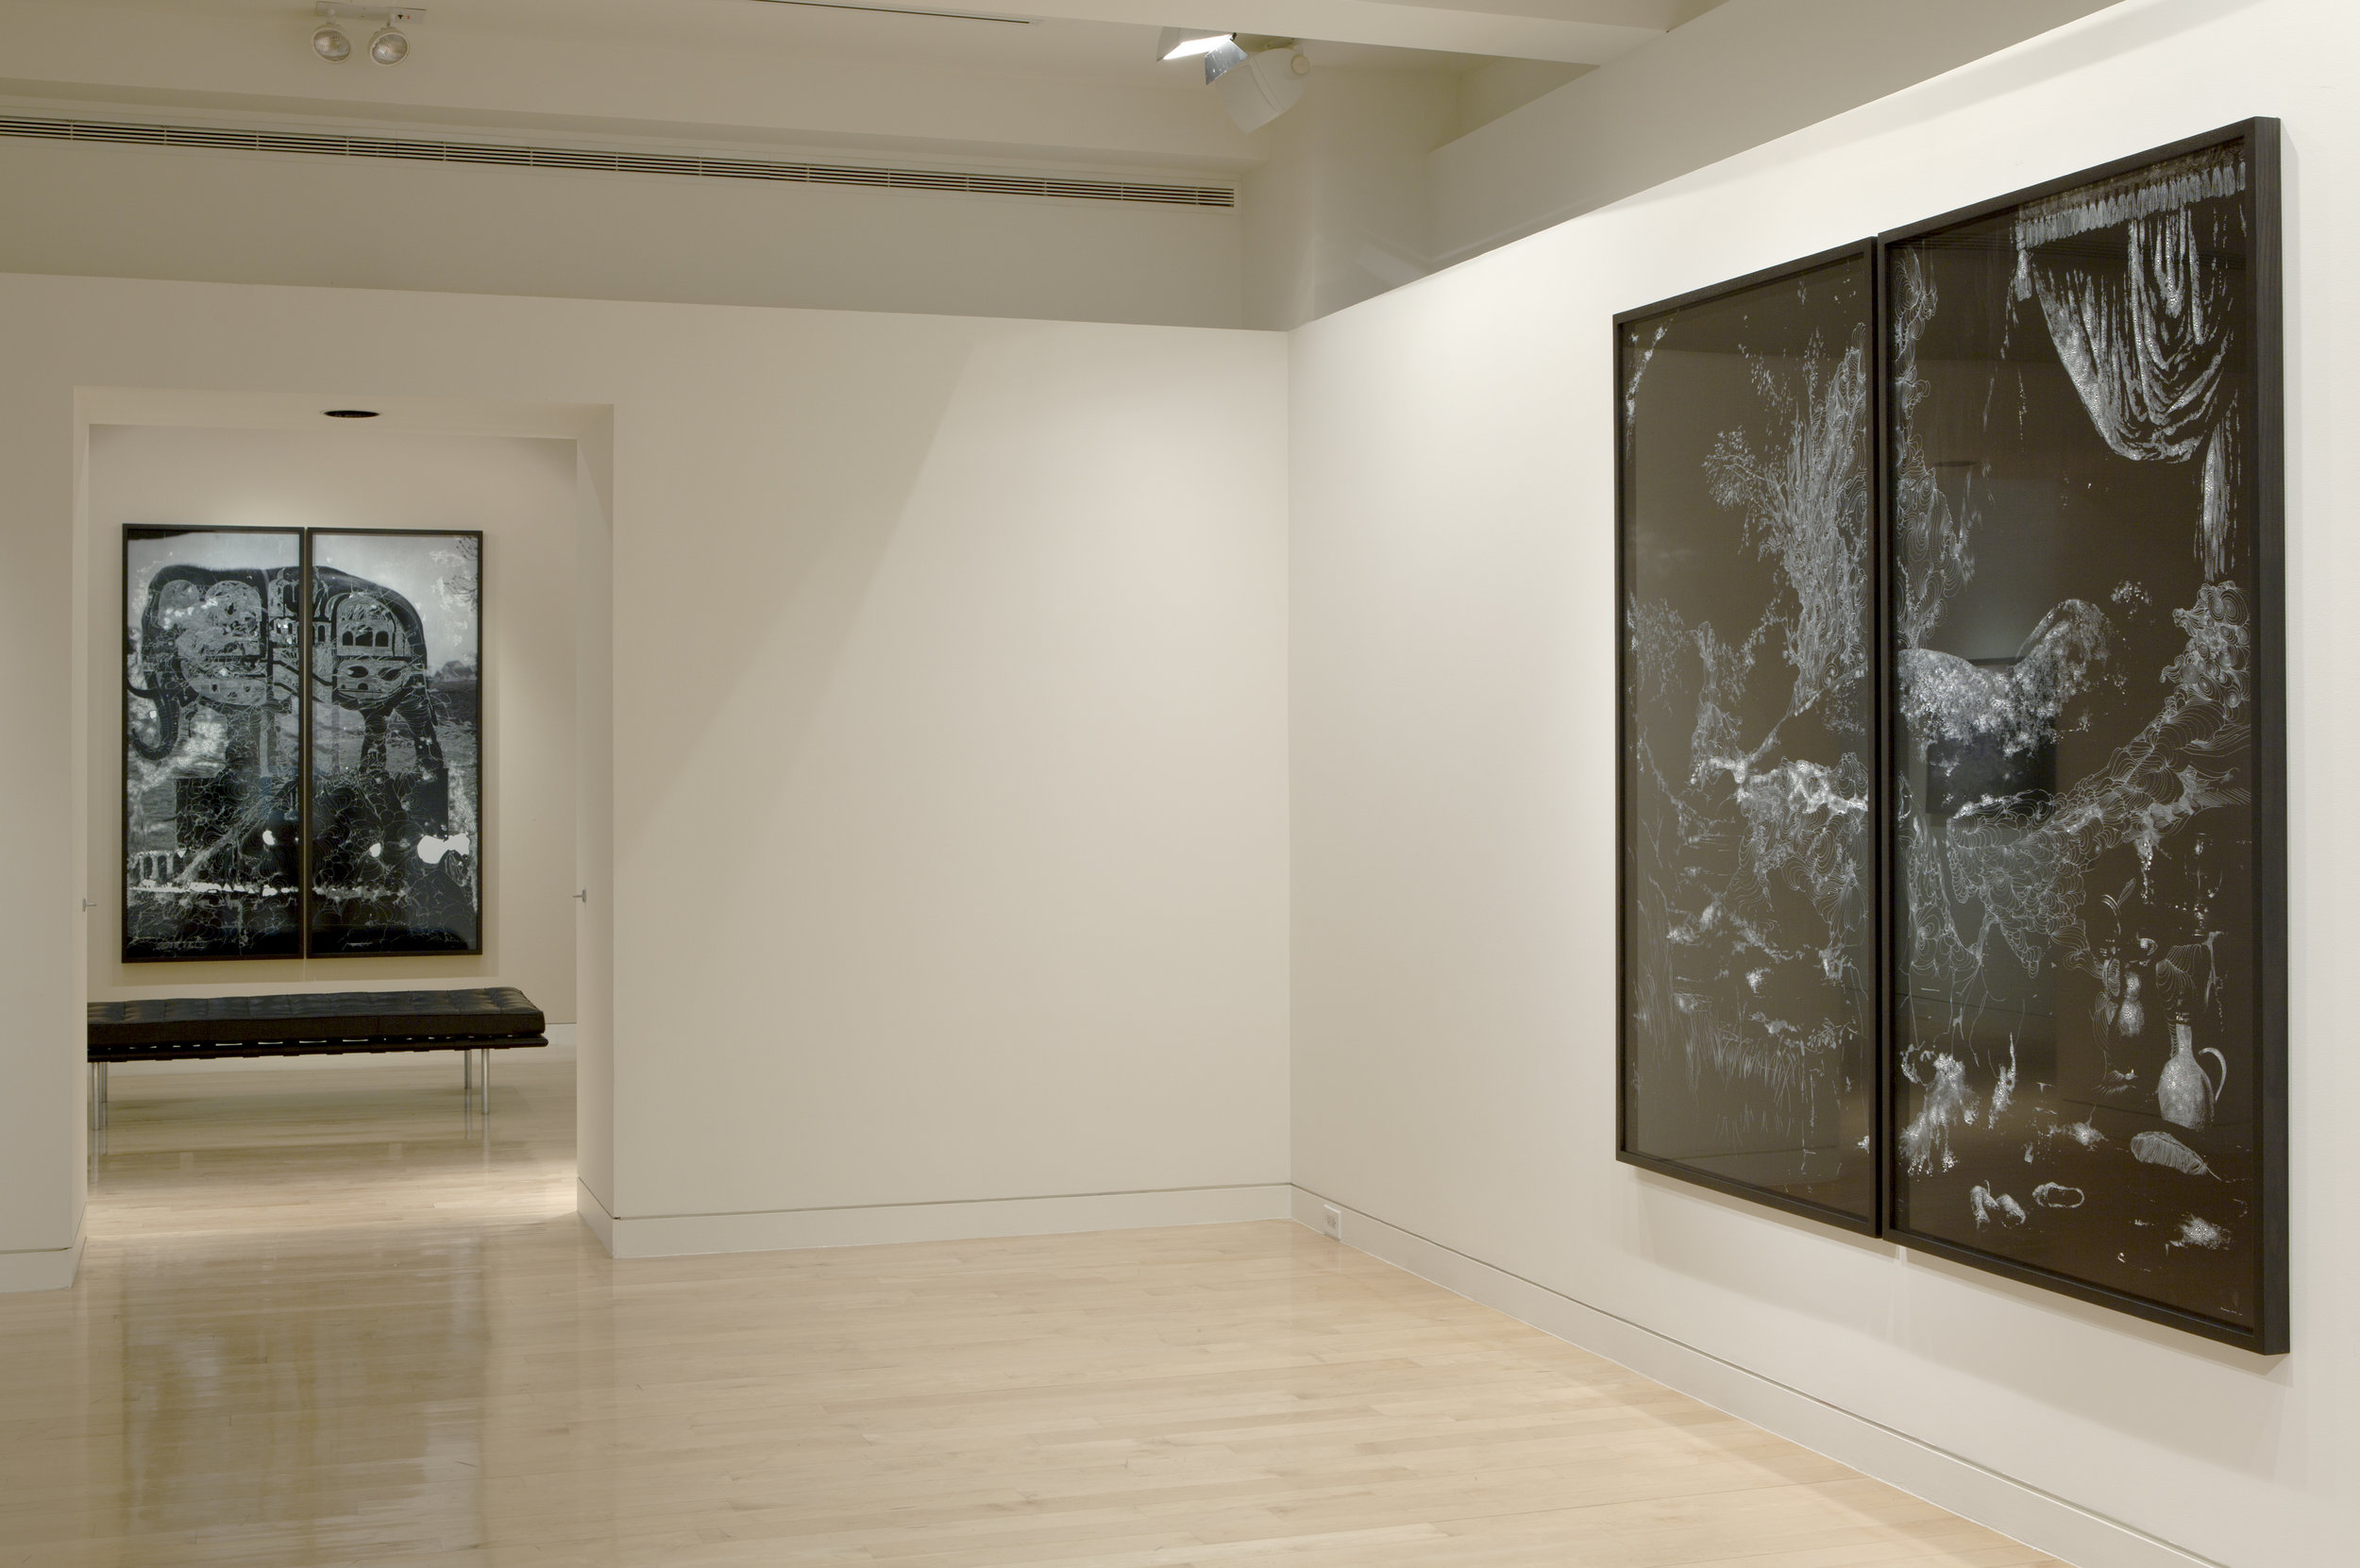 Nudes and Revolutions install-Houk 2011_10.jpg